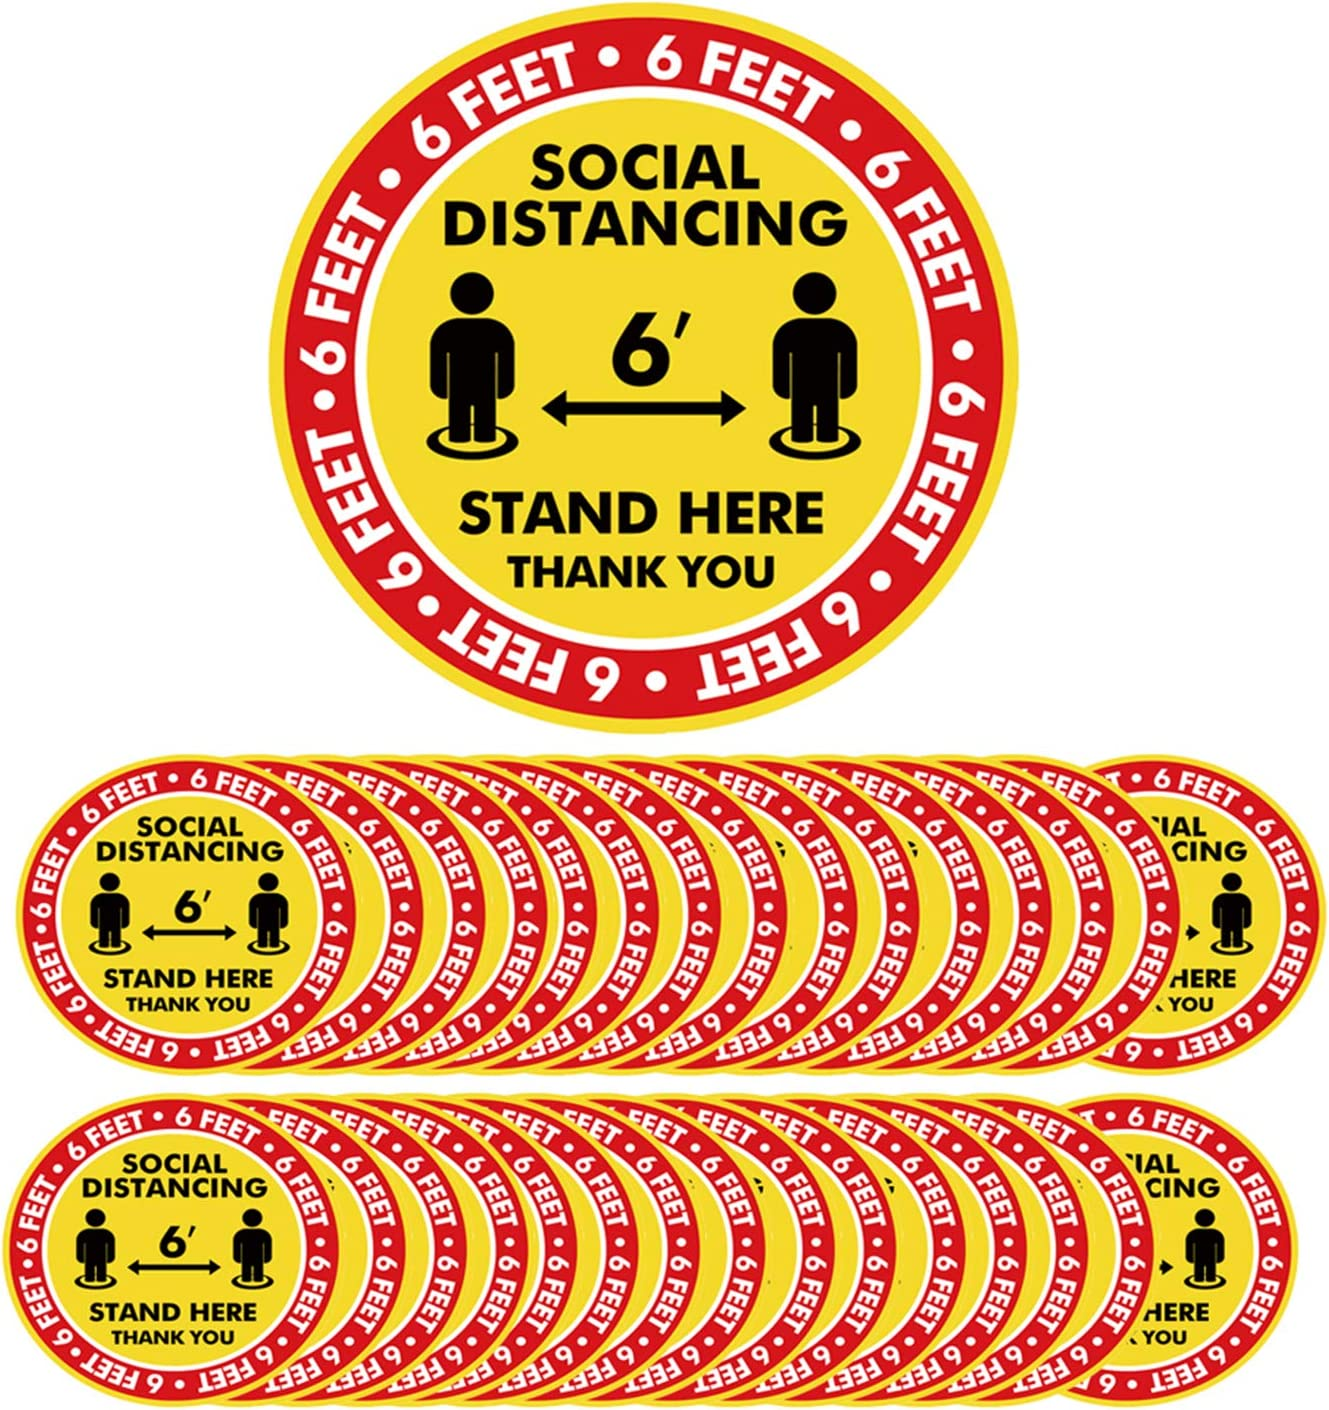 33m Heavy Duty Tape Social Distancing Floor Sticker Shop Retail FREE Delivery!